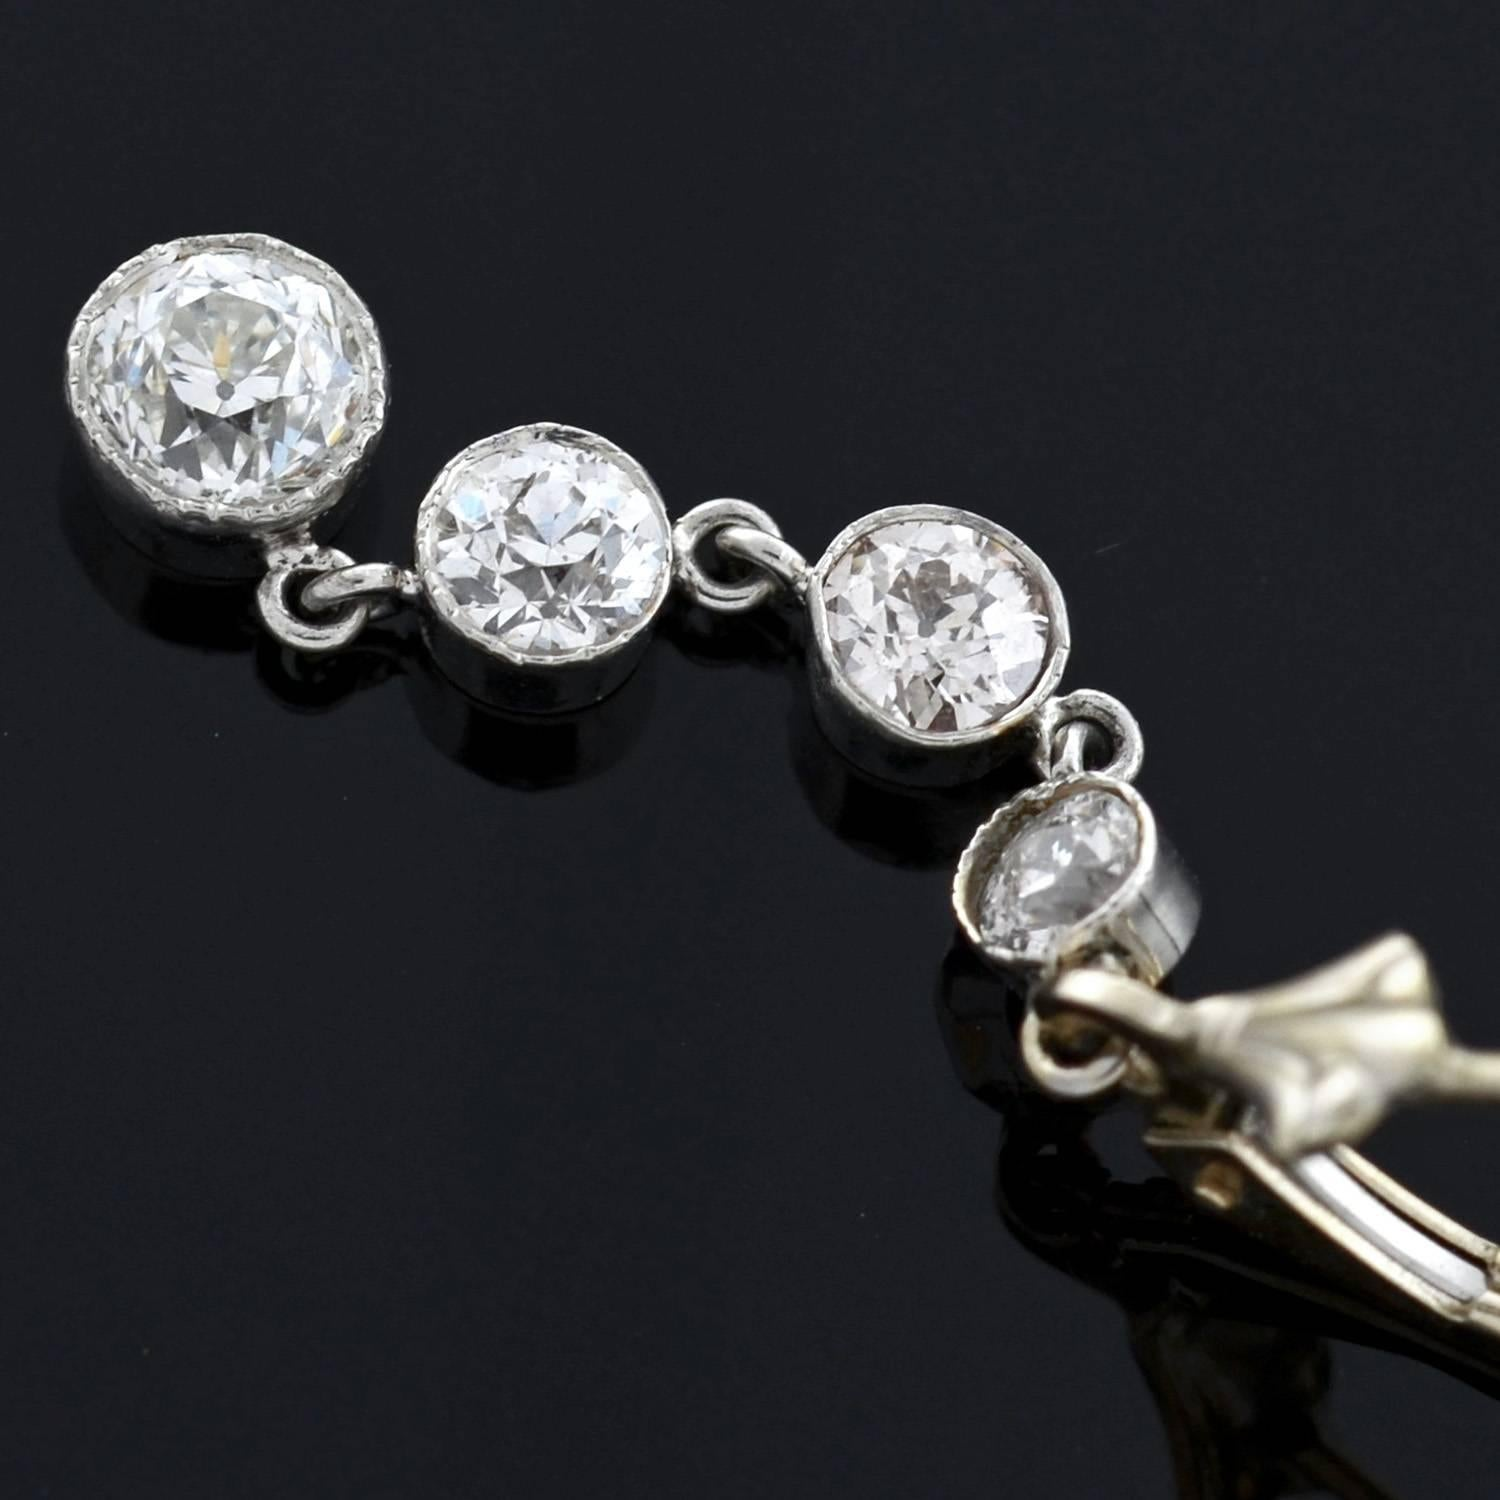 Edwardian 2 35 Total Carat Multi Diamond Drop Earrings For Sale at